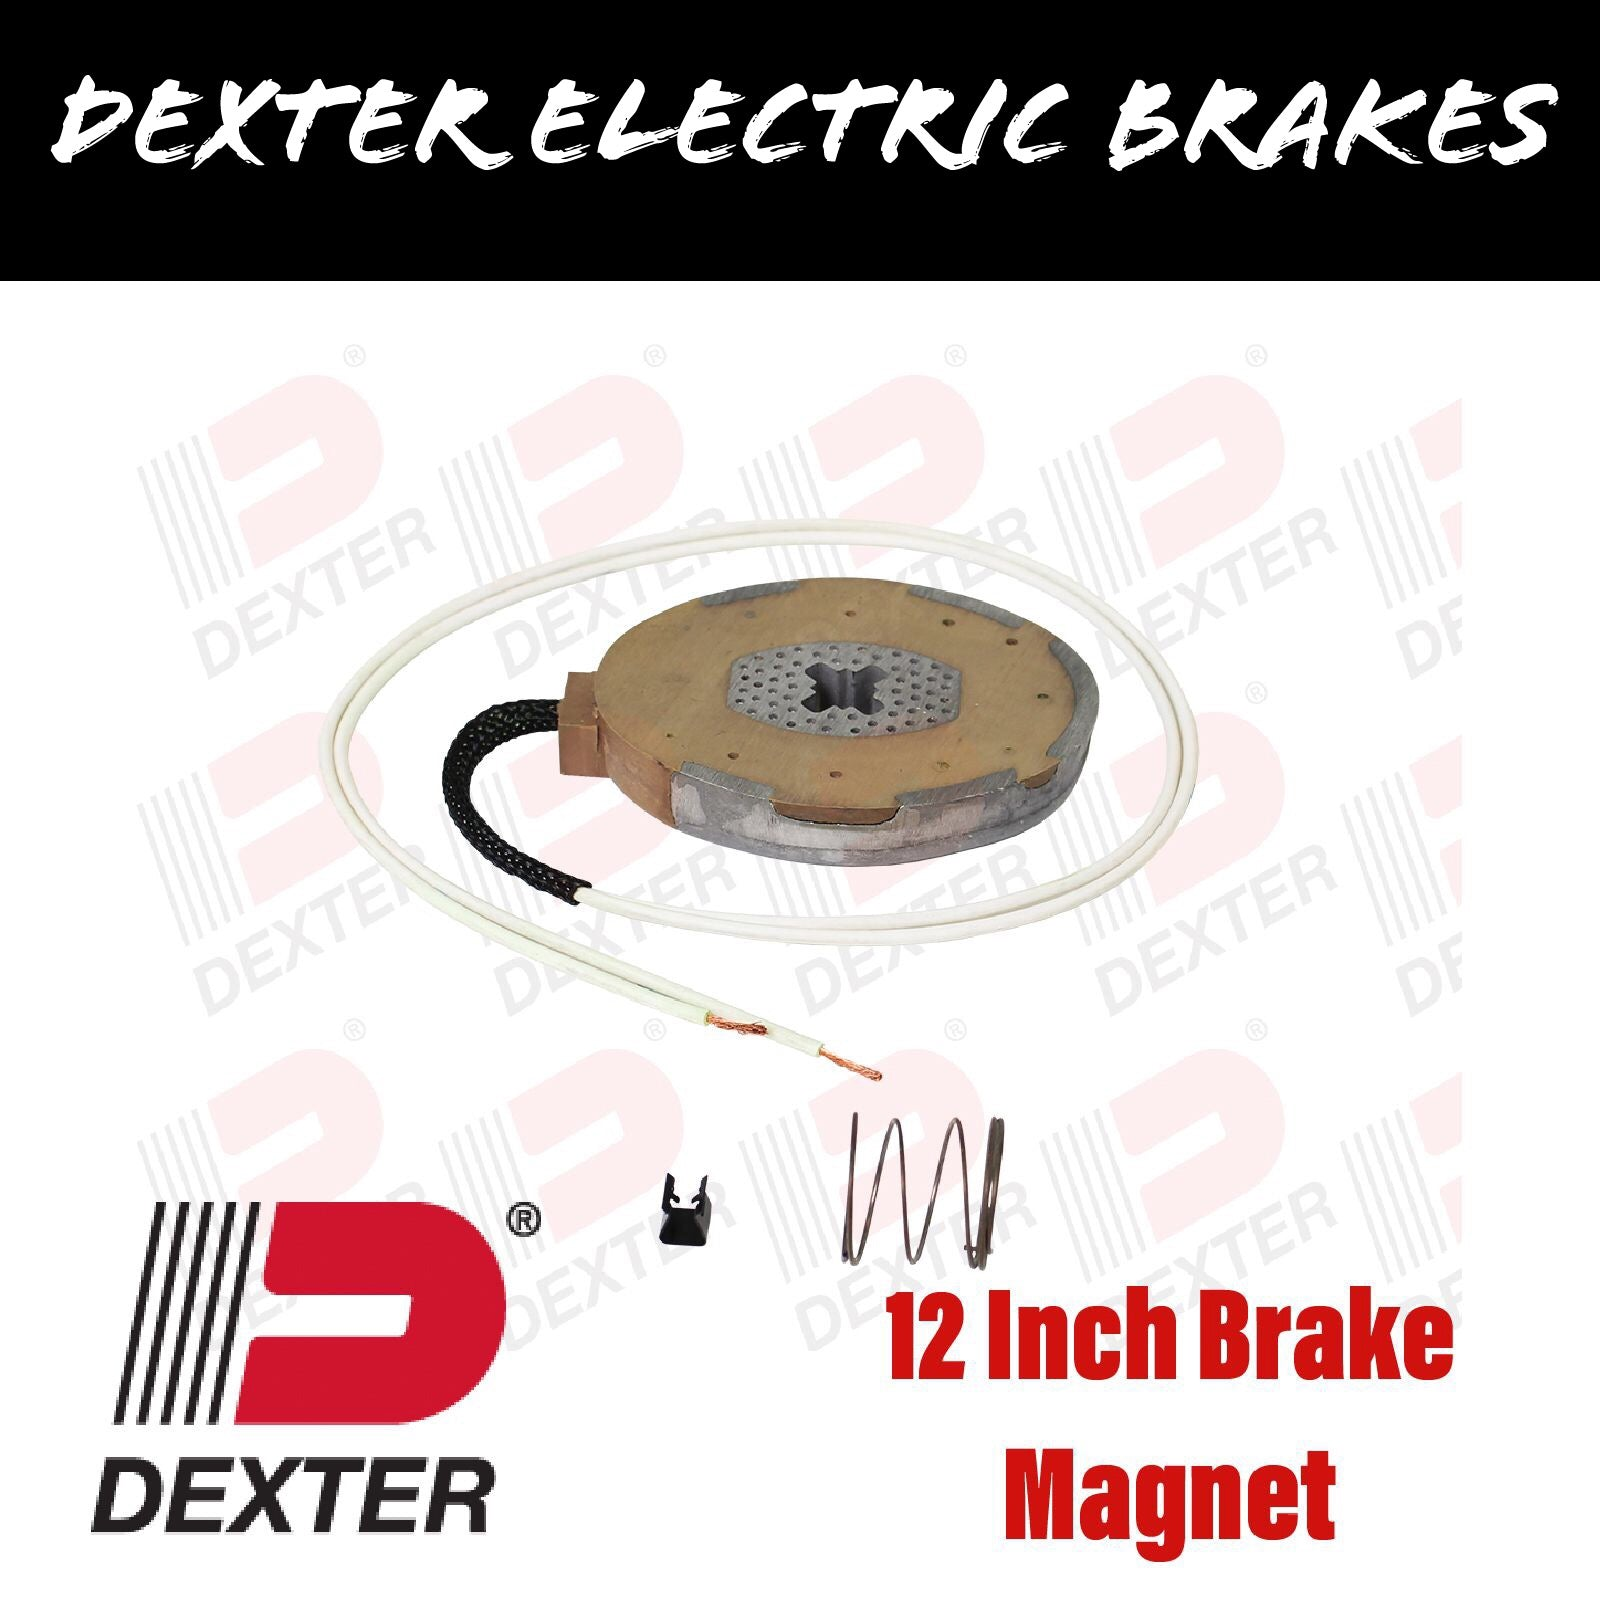 DEXTER 12 INCH ELECTRIC BRAKE MAGNET